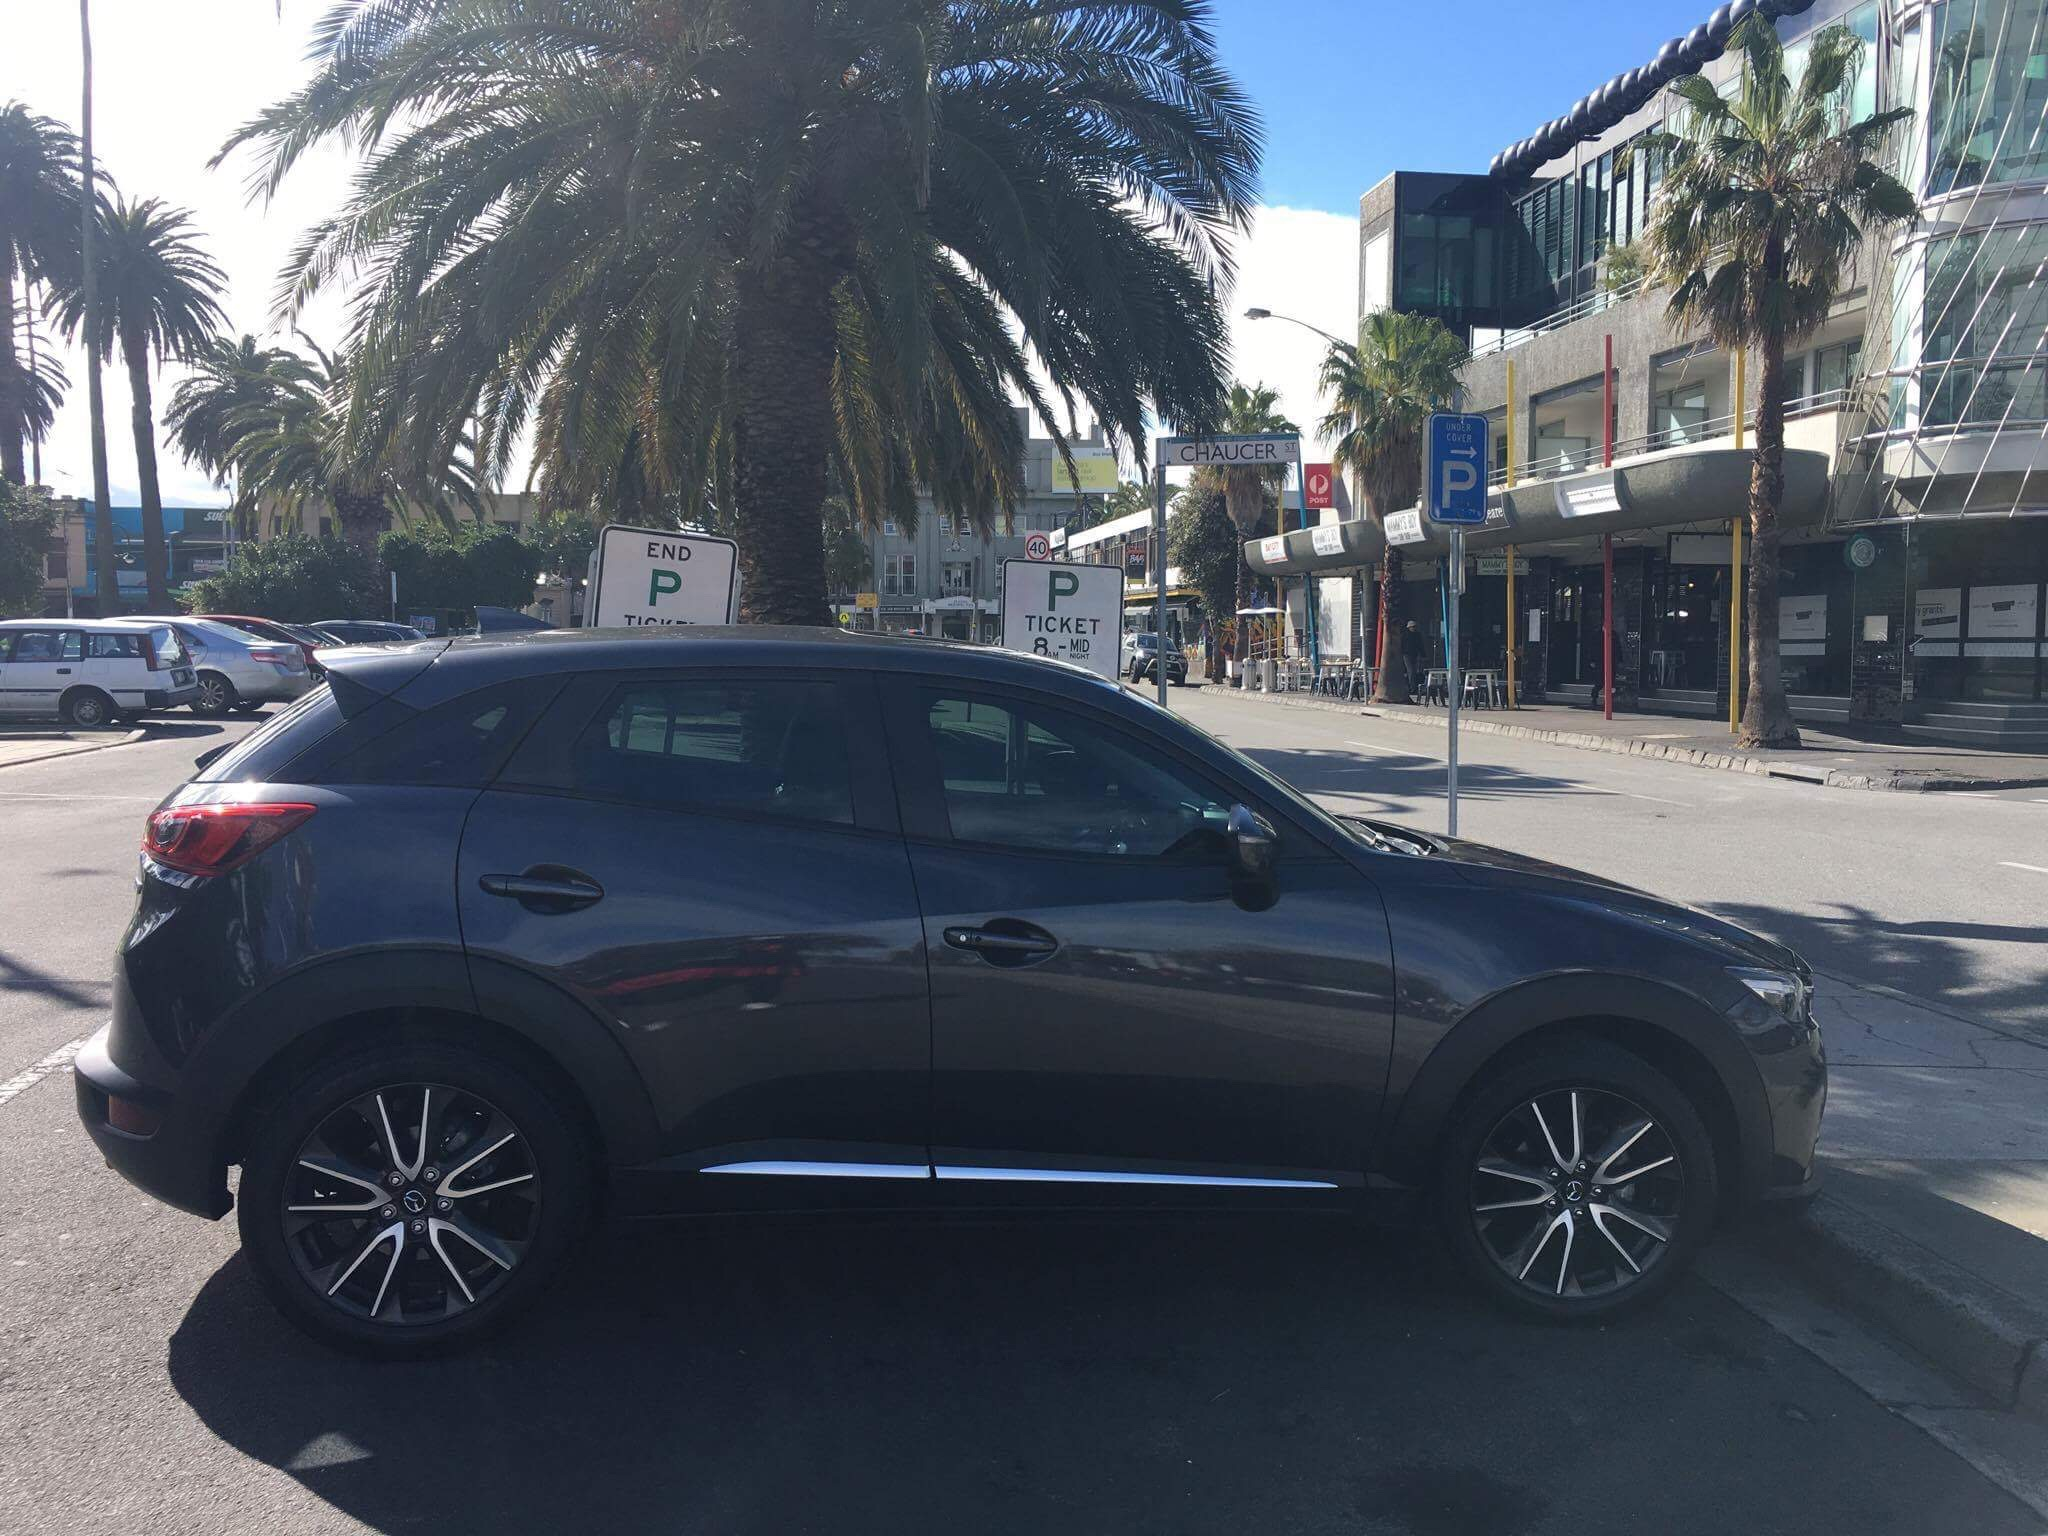 Picture of Shantel's 2016 Mazda CX3